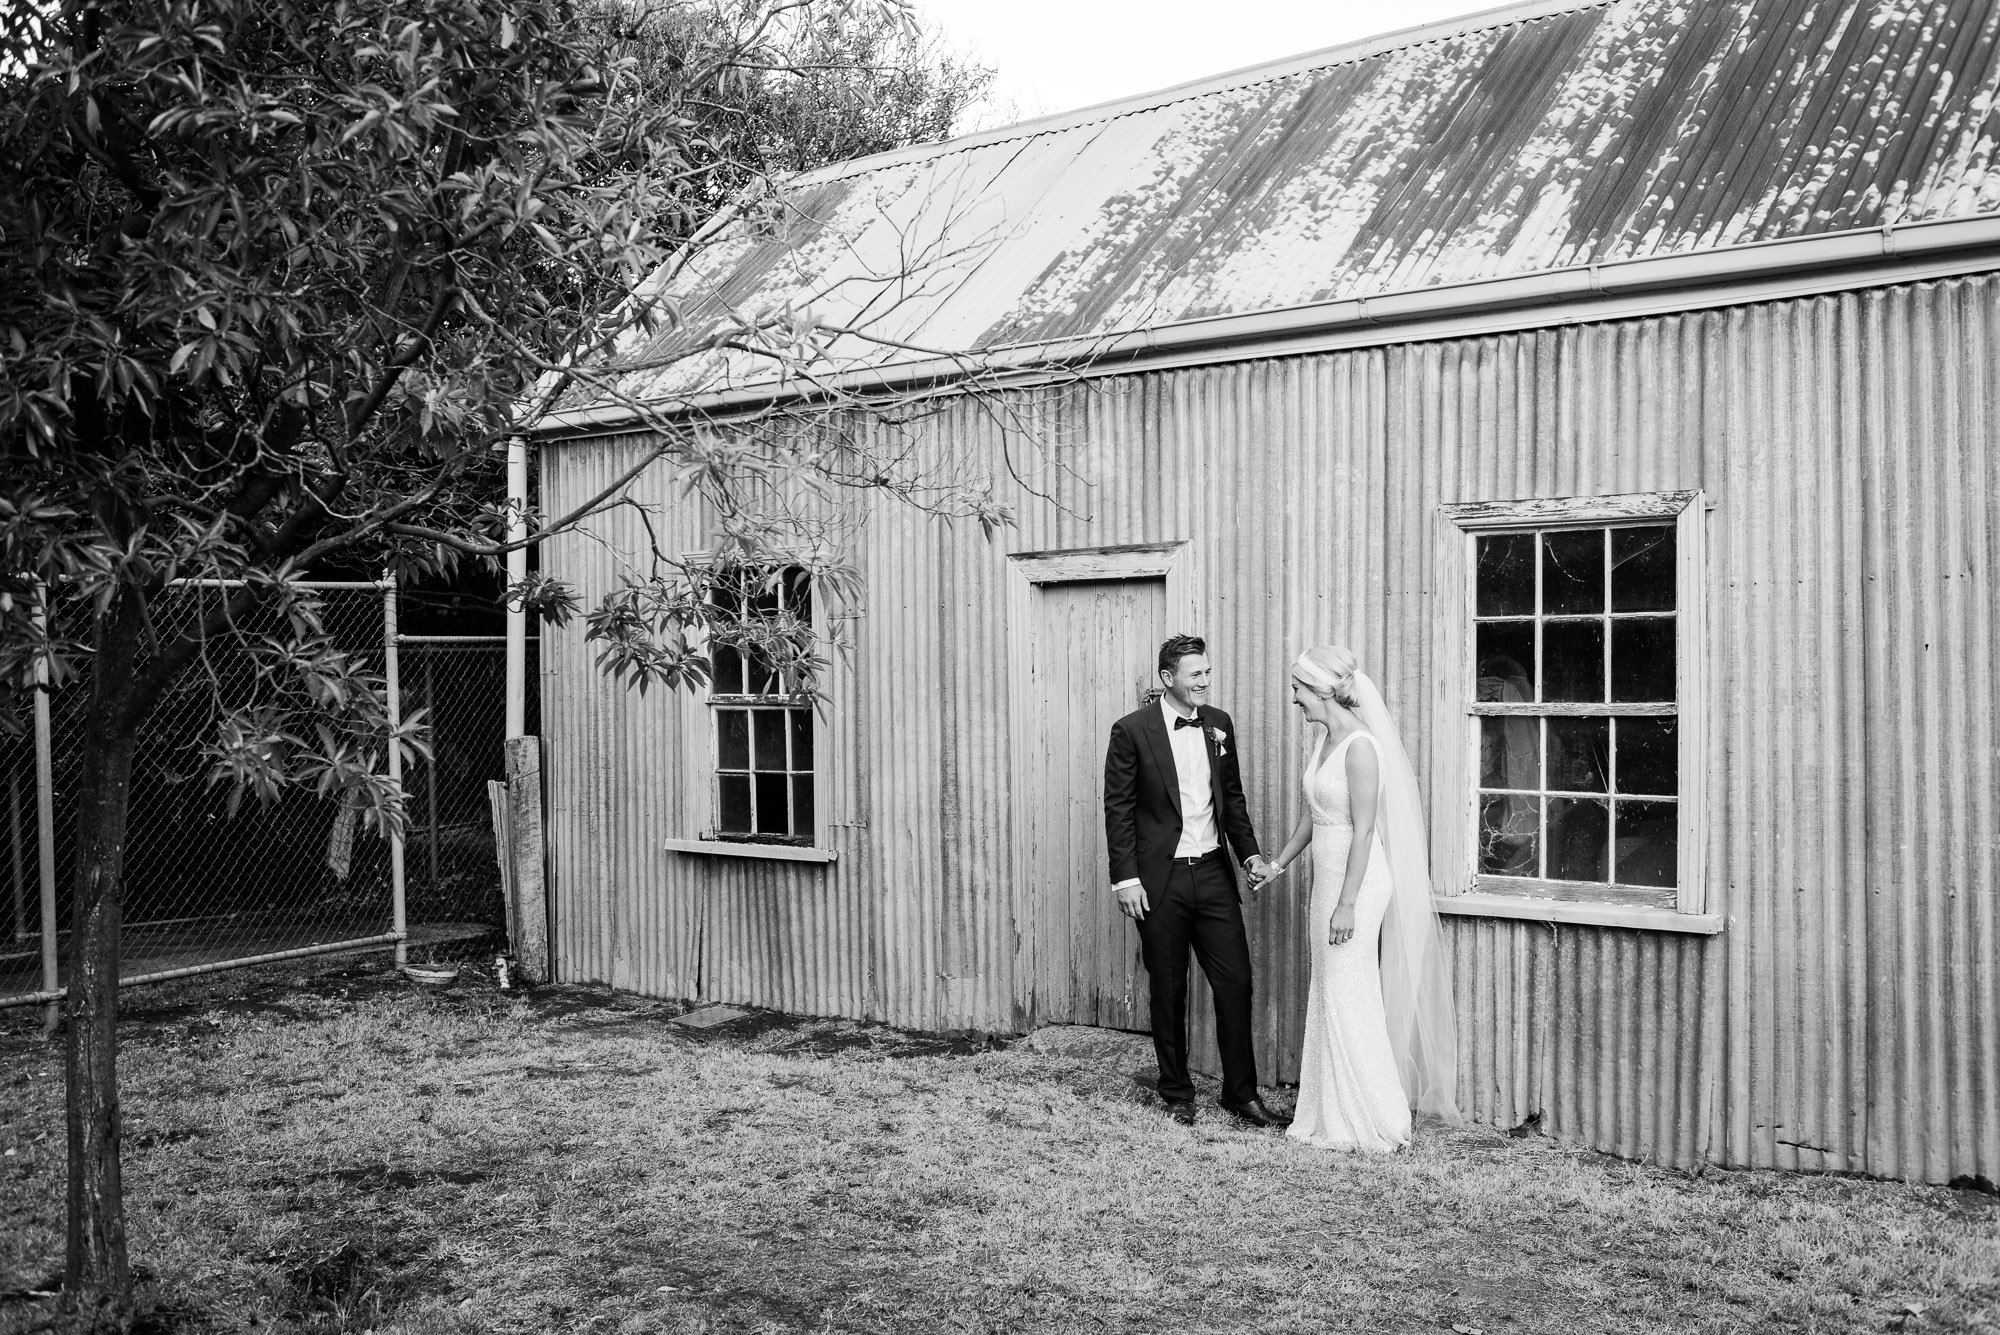 Wedding Photography at Perricoota Station, Echuca